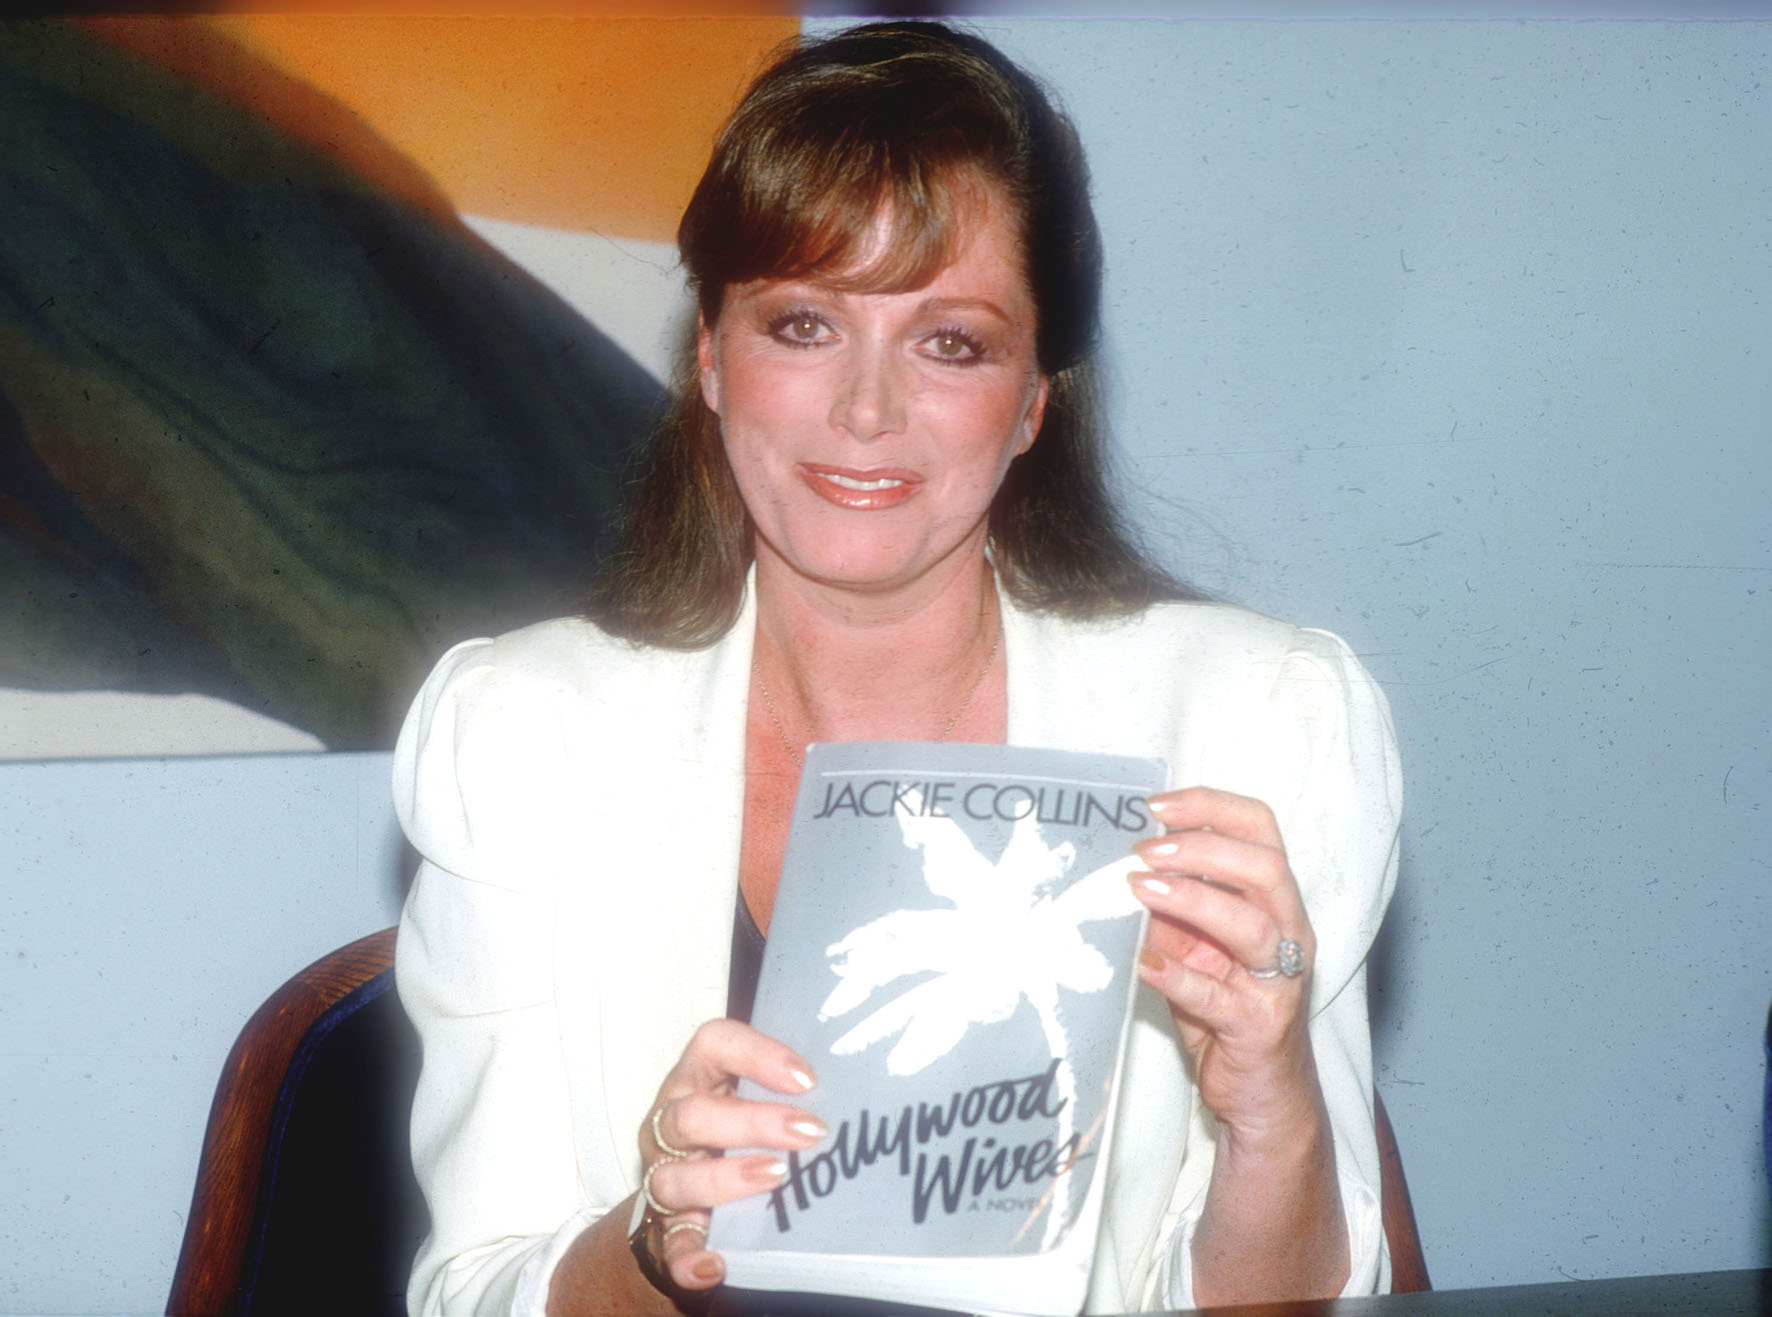 Jackie Collins promoting Hollywood Wives in the 1980s.